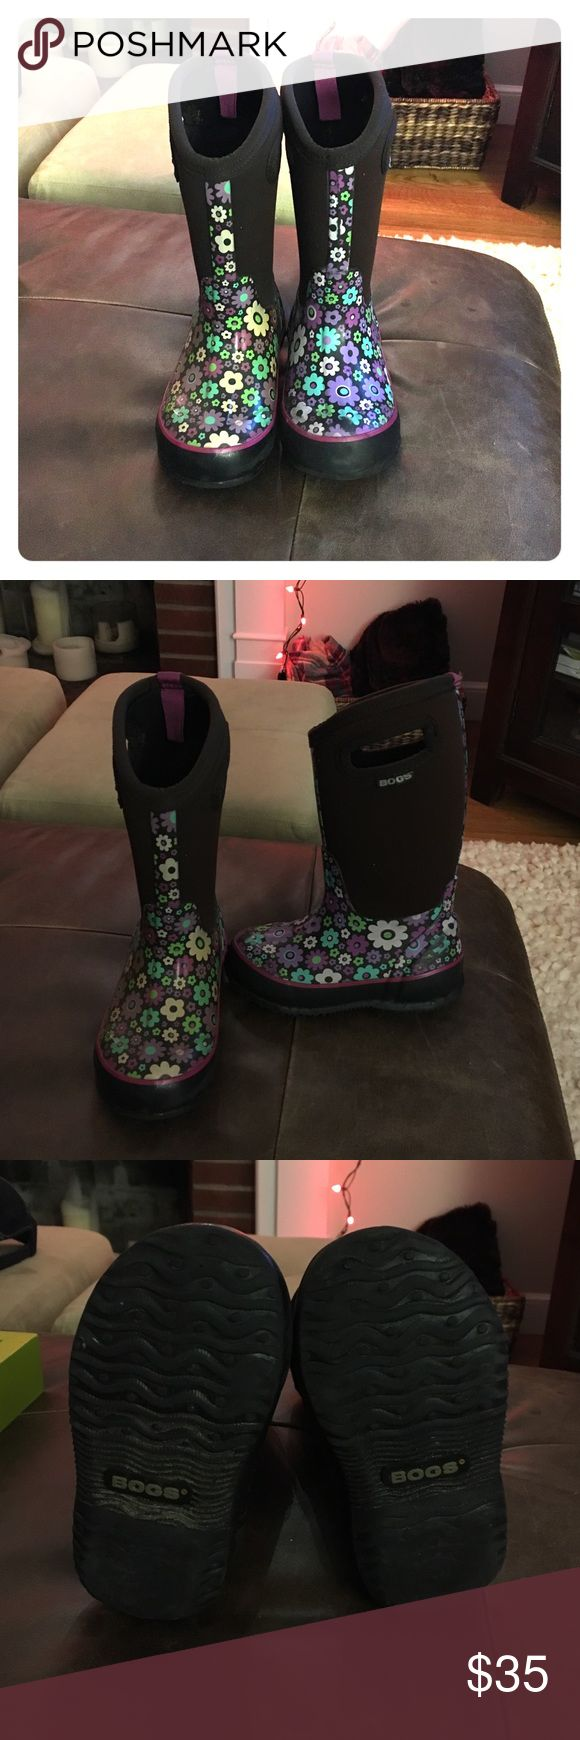 BOGS rain/winter boots BOGS rain/winter boots, size 10. The boots are brown with daisy flower detail. Bogs Shoes Rain & Snow Boots